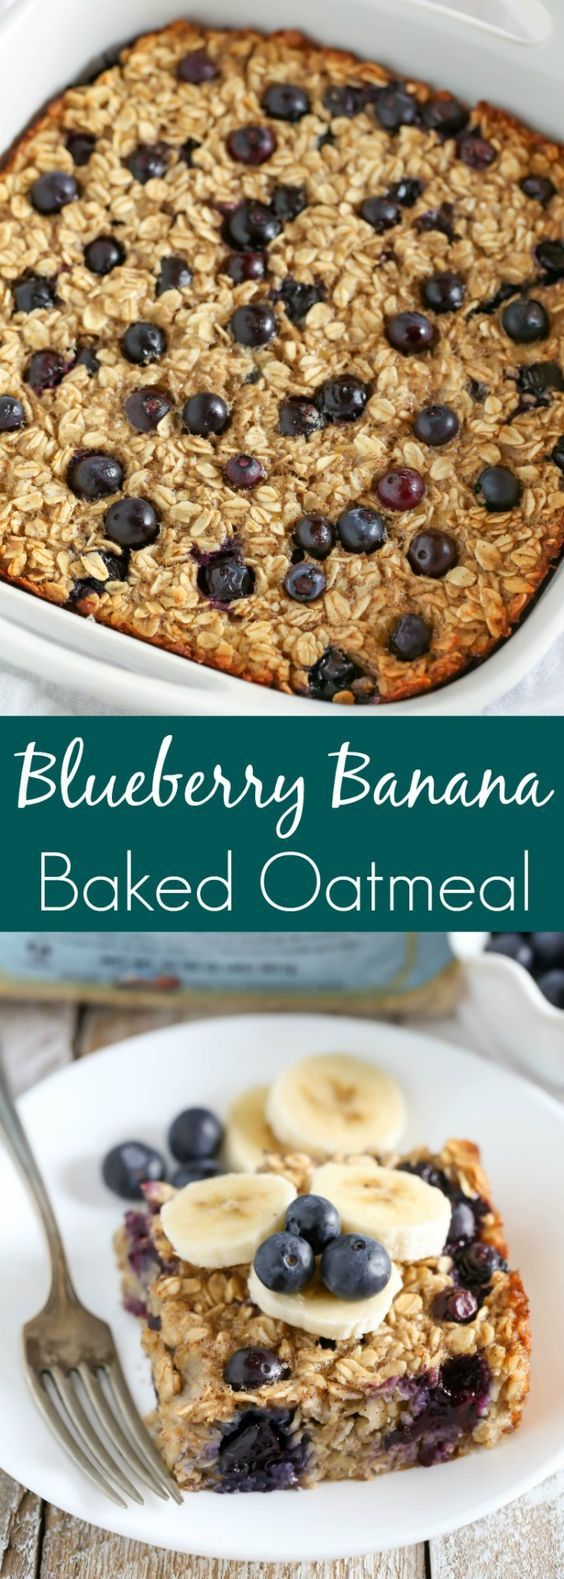 This Blueberry Banana Baked Oatmeal is easy to make and ...